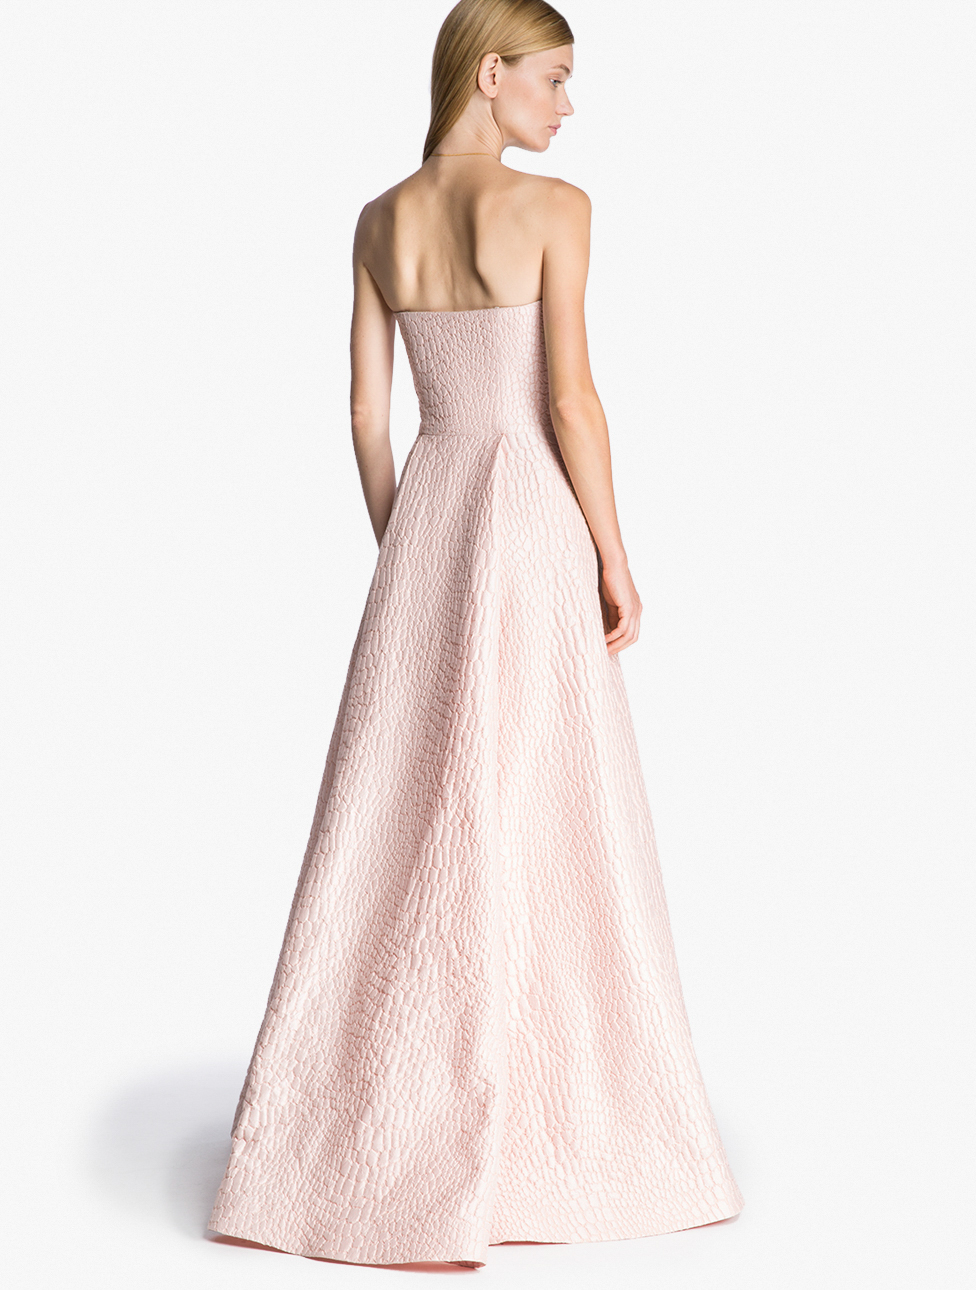 Lyst - Halston Strapless Reptile Jacquard Gown in Pink